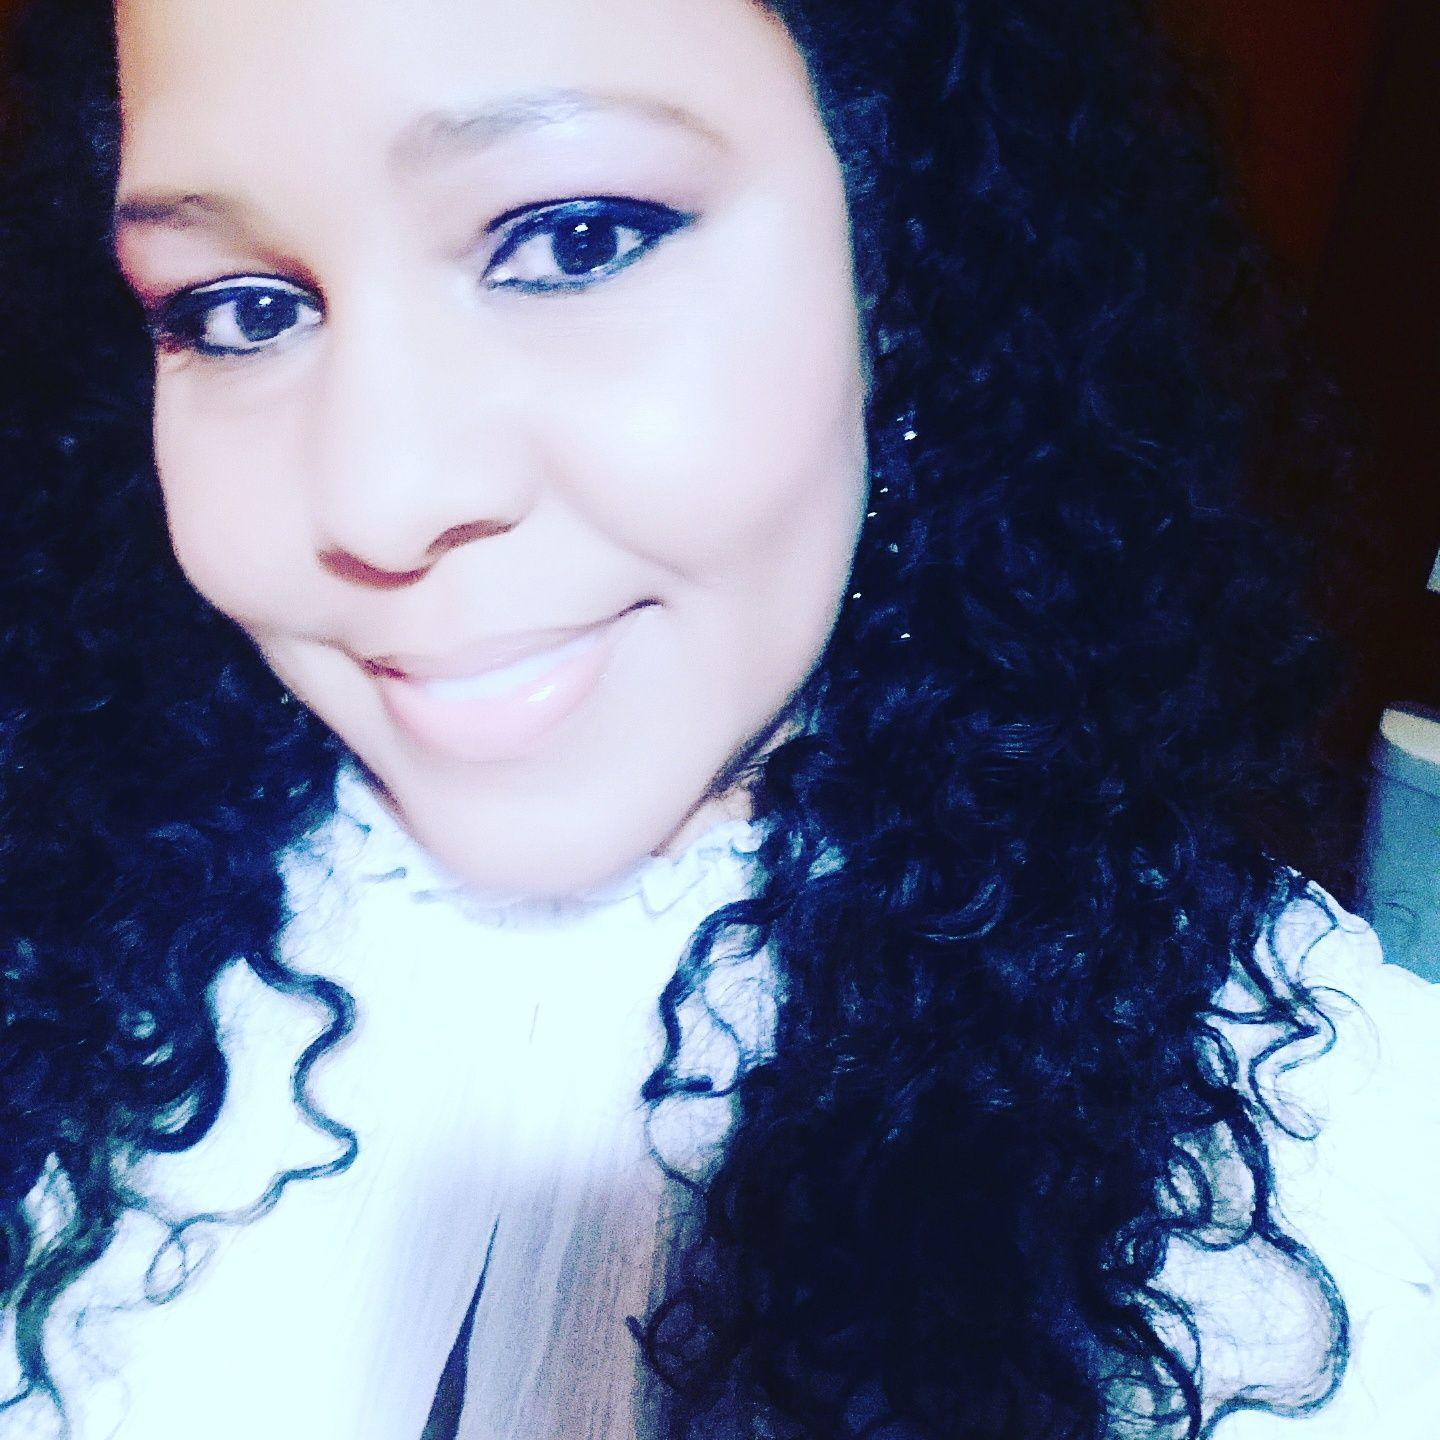 gaithersburg single christian girls Meet loads of available single women in gaithersburg with mingle2's  gaithersburg  mingle2 is full of hot gaithersburg girls waiting to hear from you   gaithersburg christian dating | gaithersburg black singles | gaithersburg  asian women.